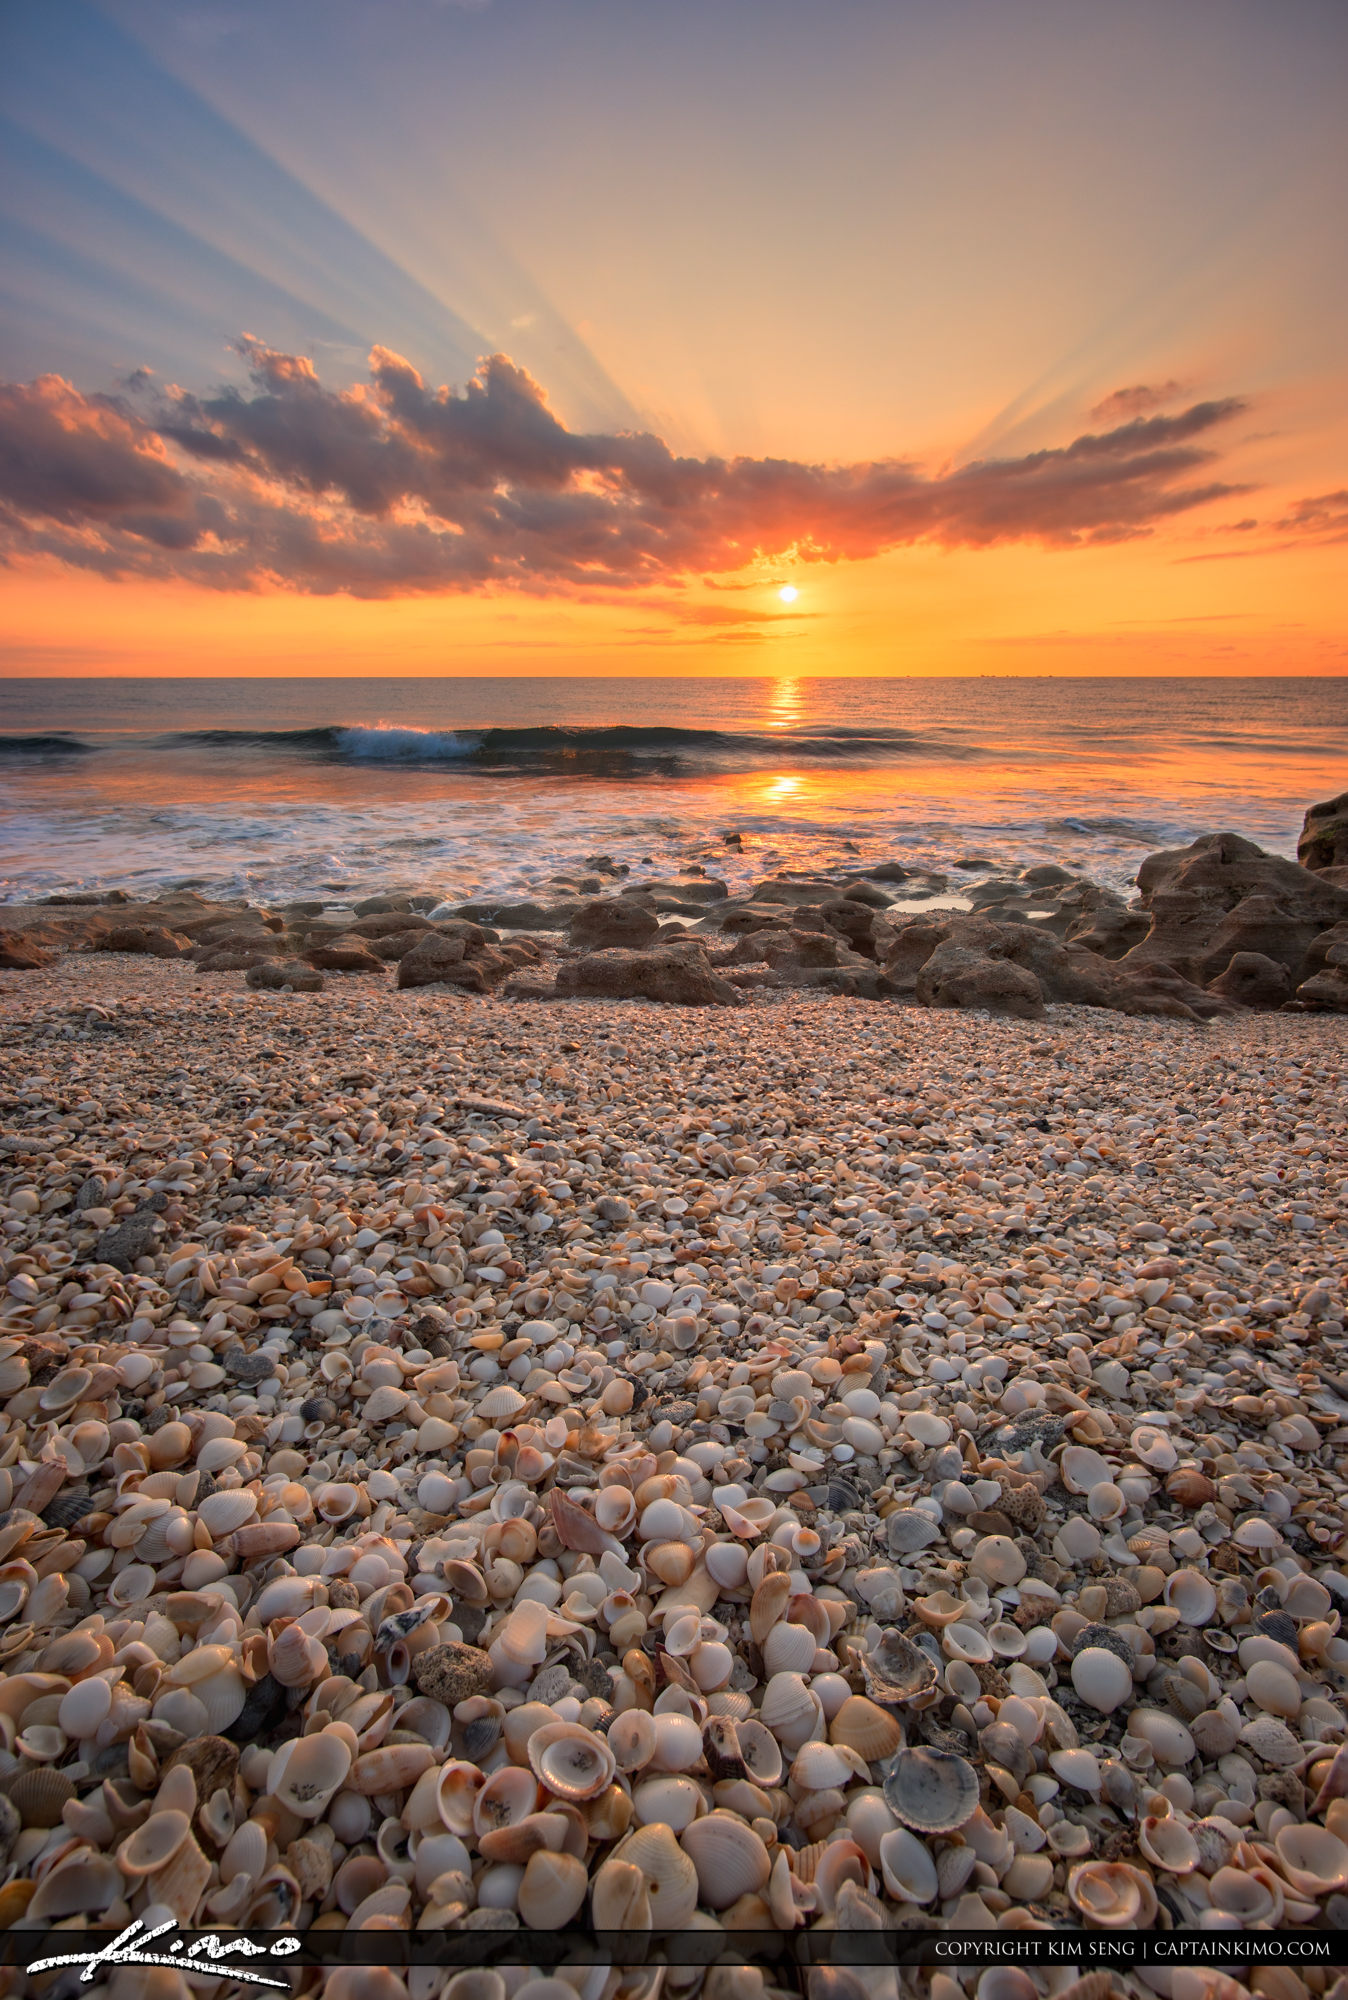 Seashells and Sunrays Over Beach at Coral Cove Park